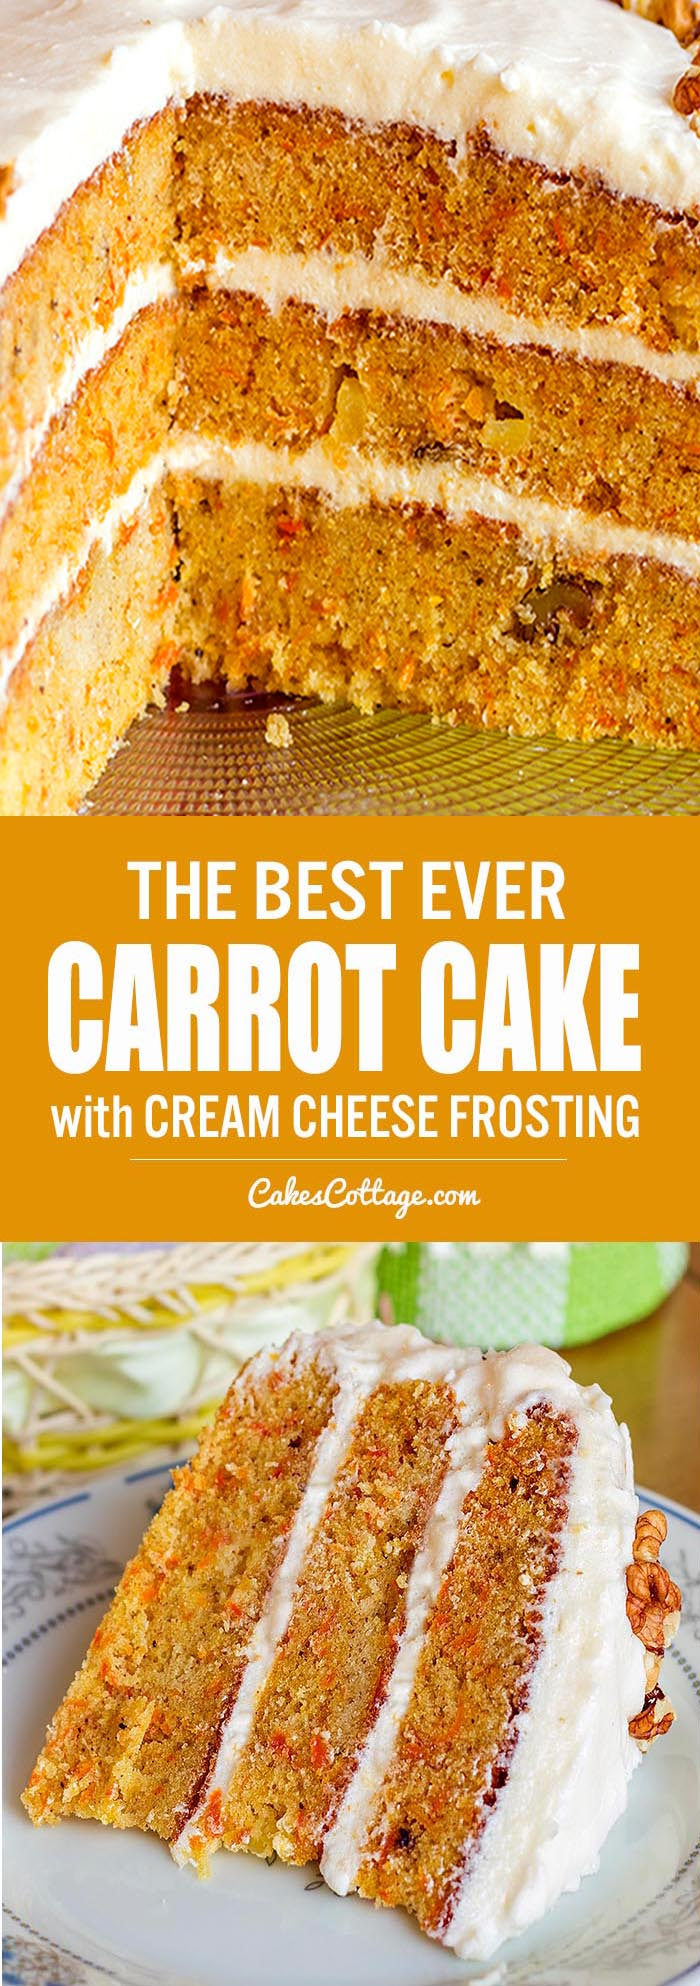 Our family favorite carrot cake recipe, with walnuts, pineapple, and a cream cheese frosting.